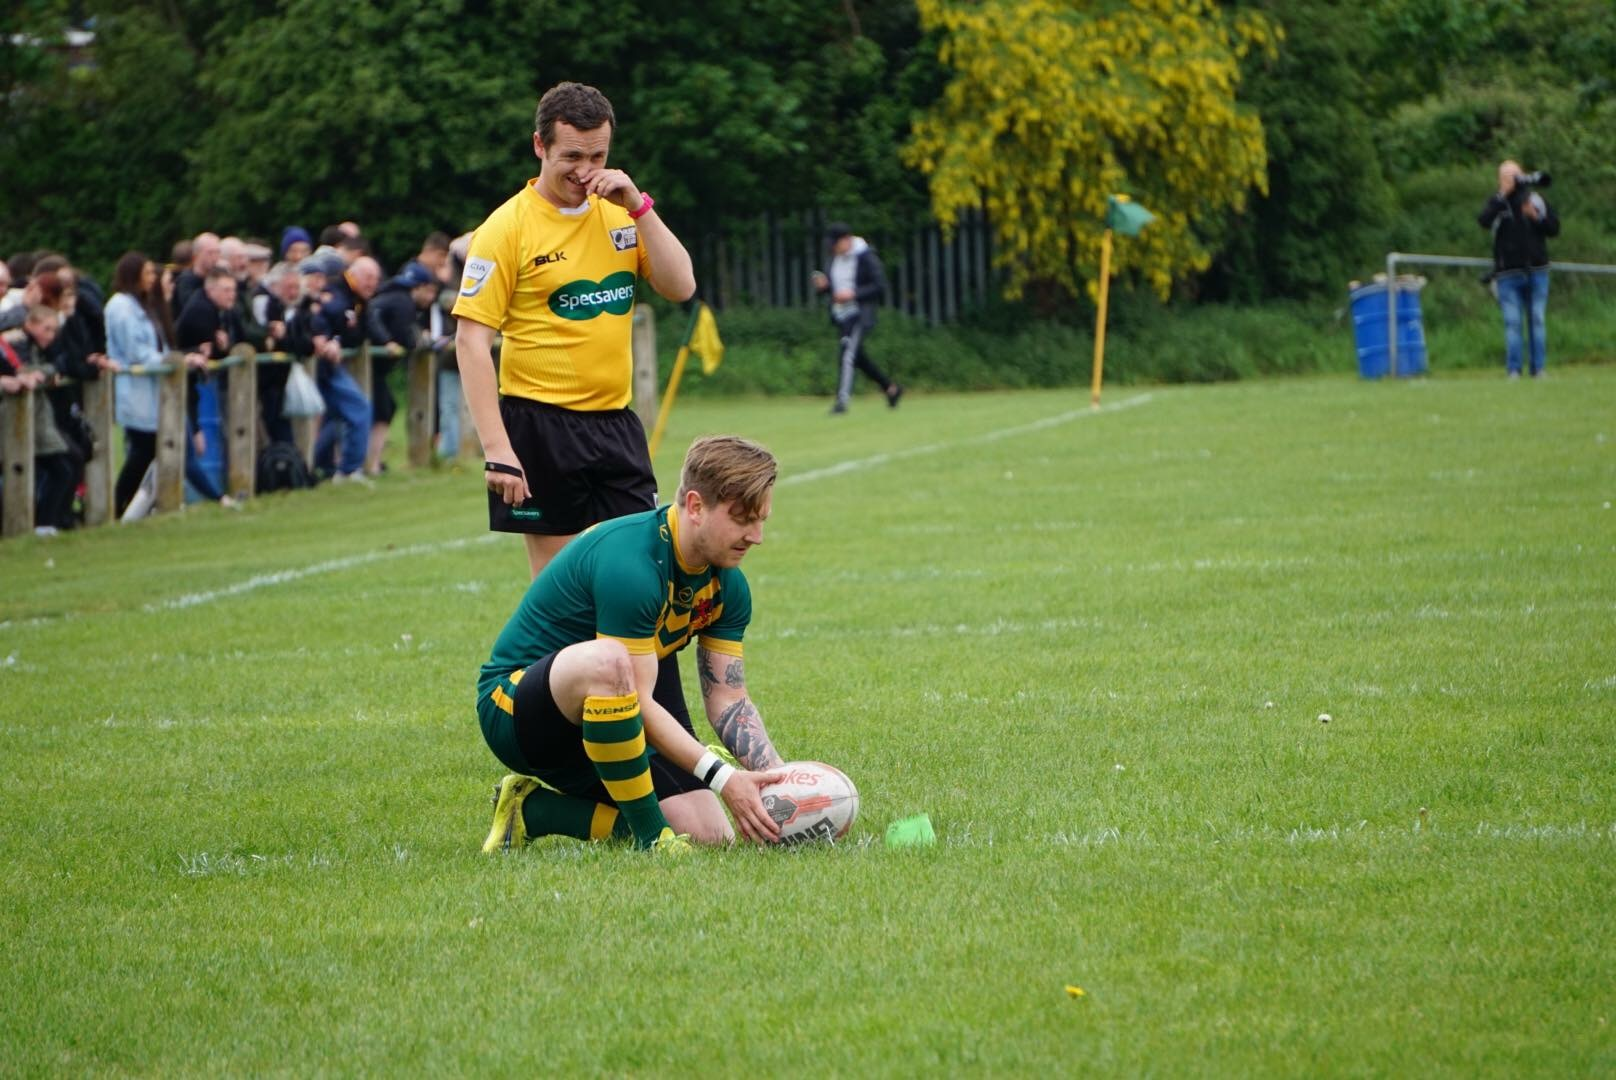 Scott Partis was very instrumental throughout the game despite missing a few conversions.